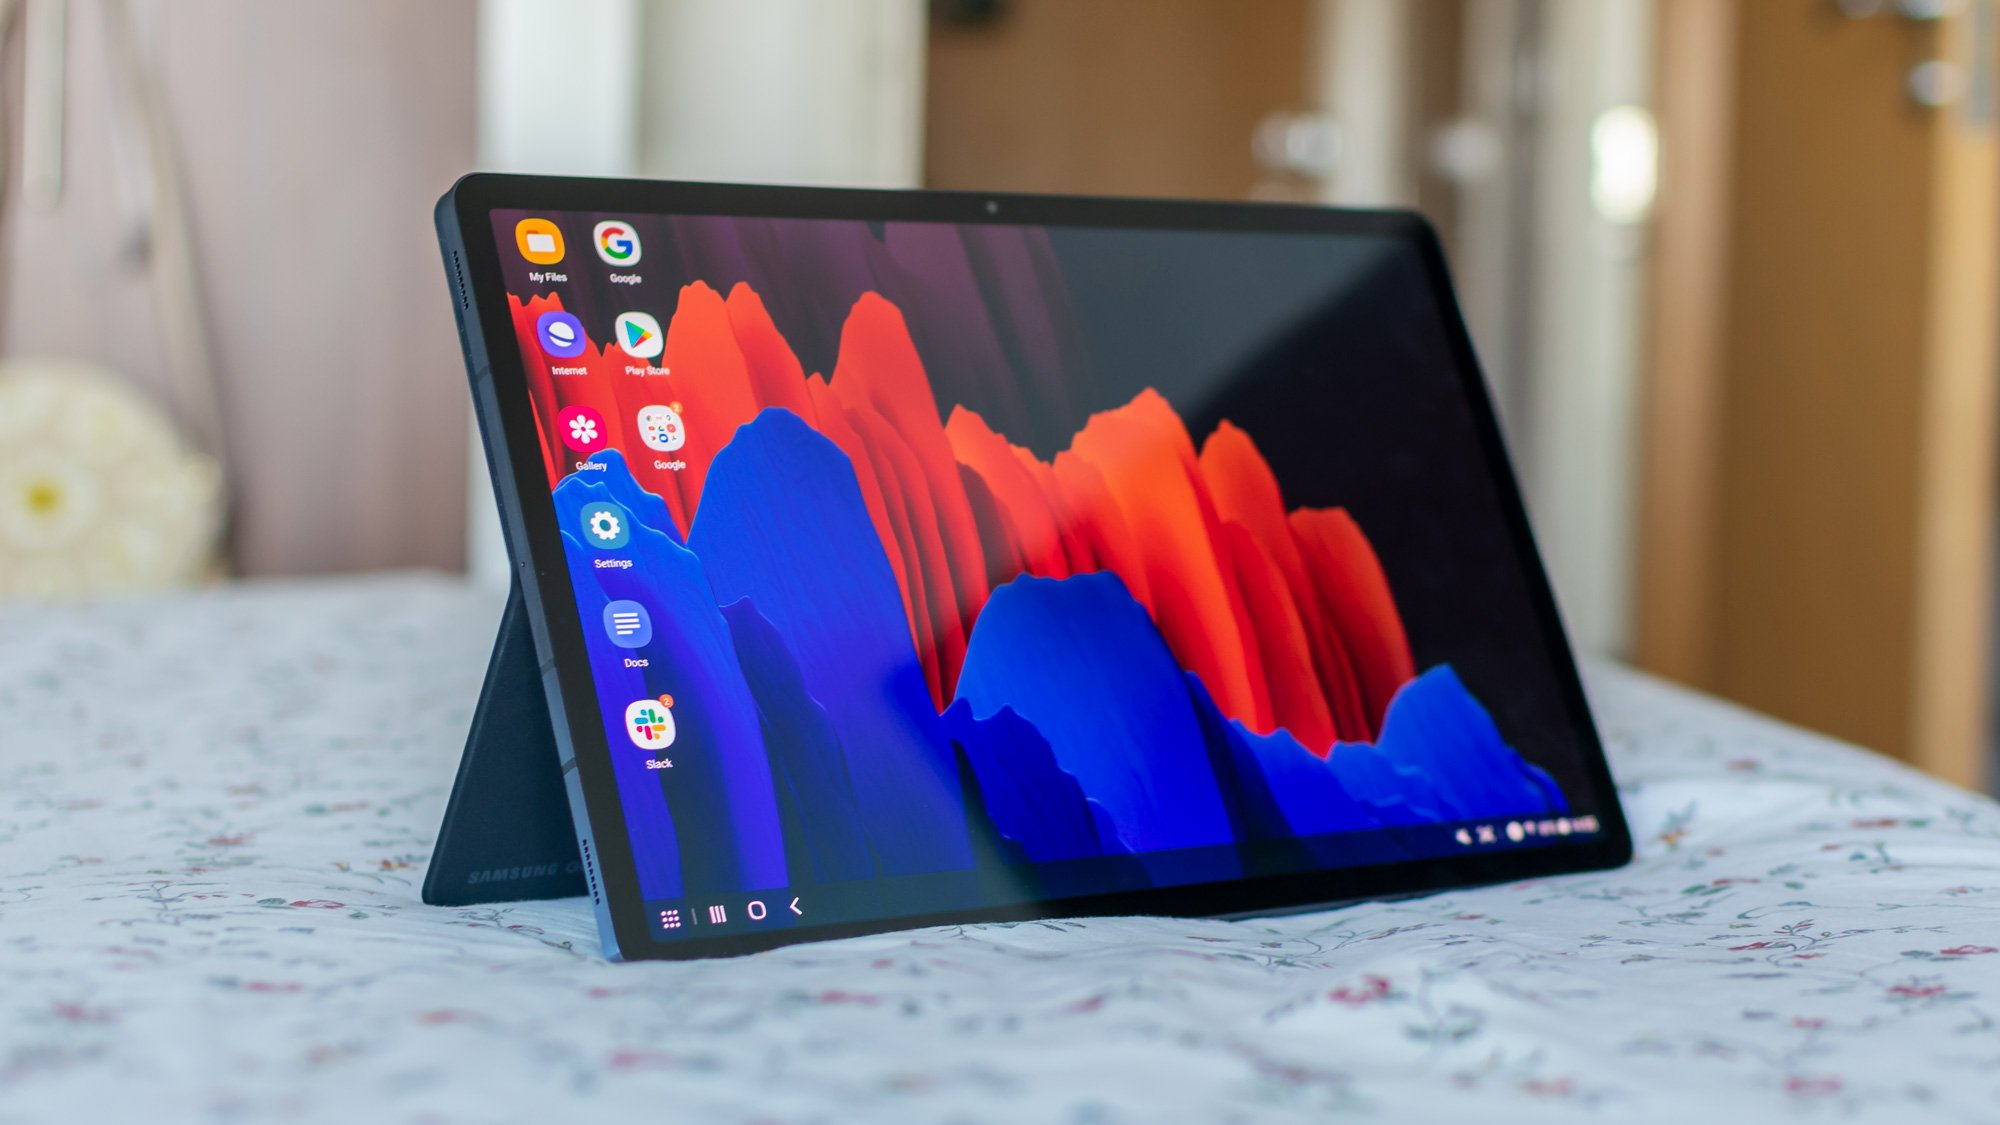 Samsung Galaxy Tab S7 Plus review: Beating the iPad to 5G | Expert Reviews